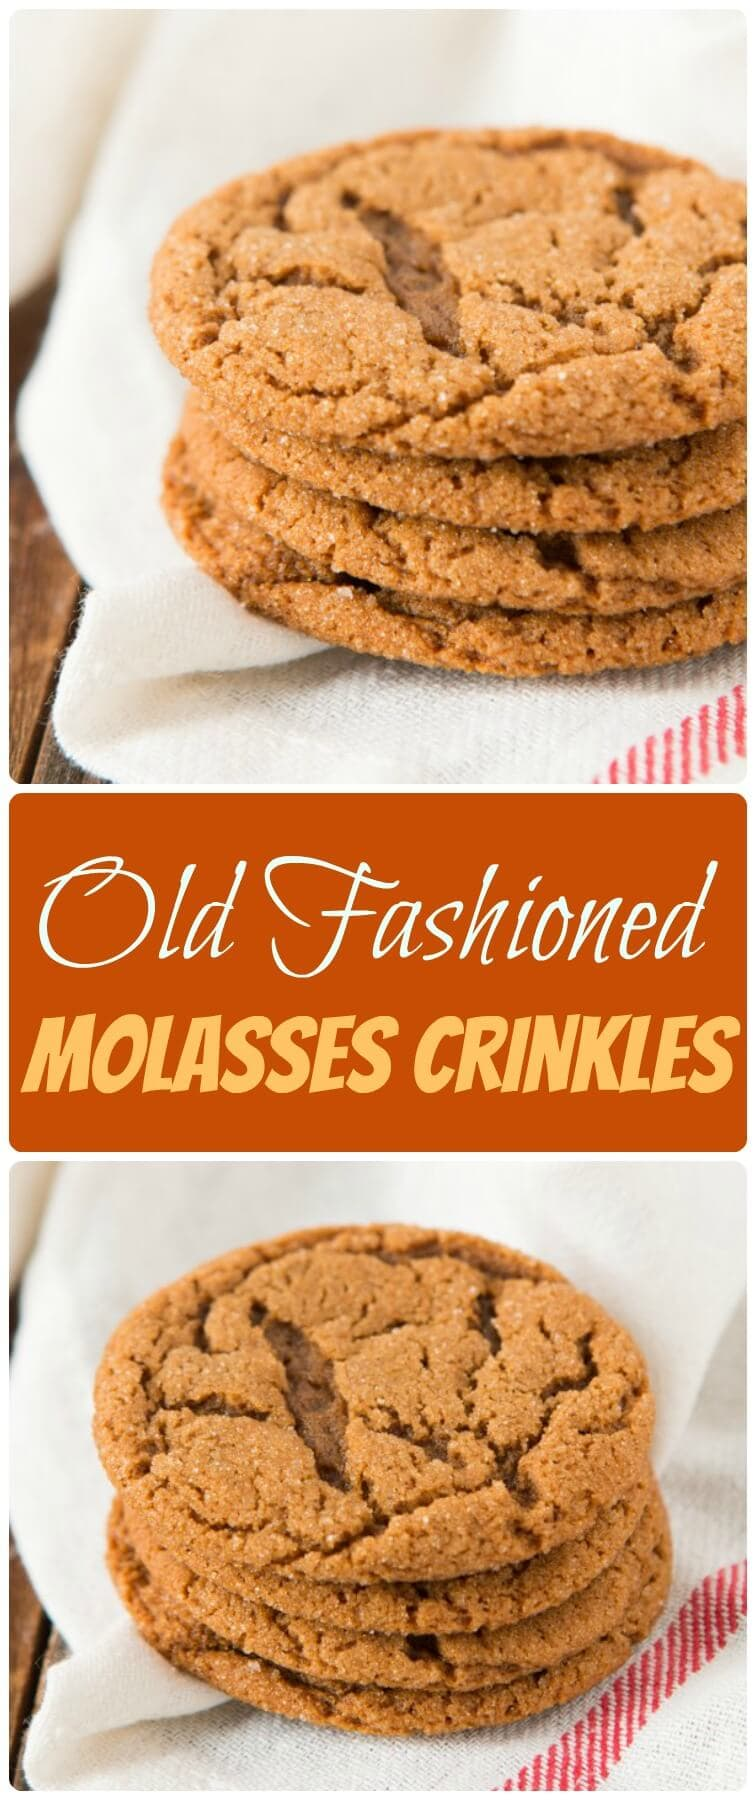 Old Fashioned Molasses Crinkles are one of the chewiest, yummiest cookies to make for the holidays, you will absolutely love them! ohsweetbasil.com